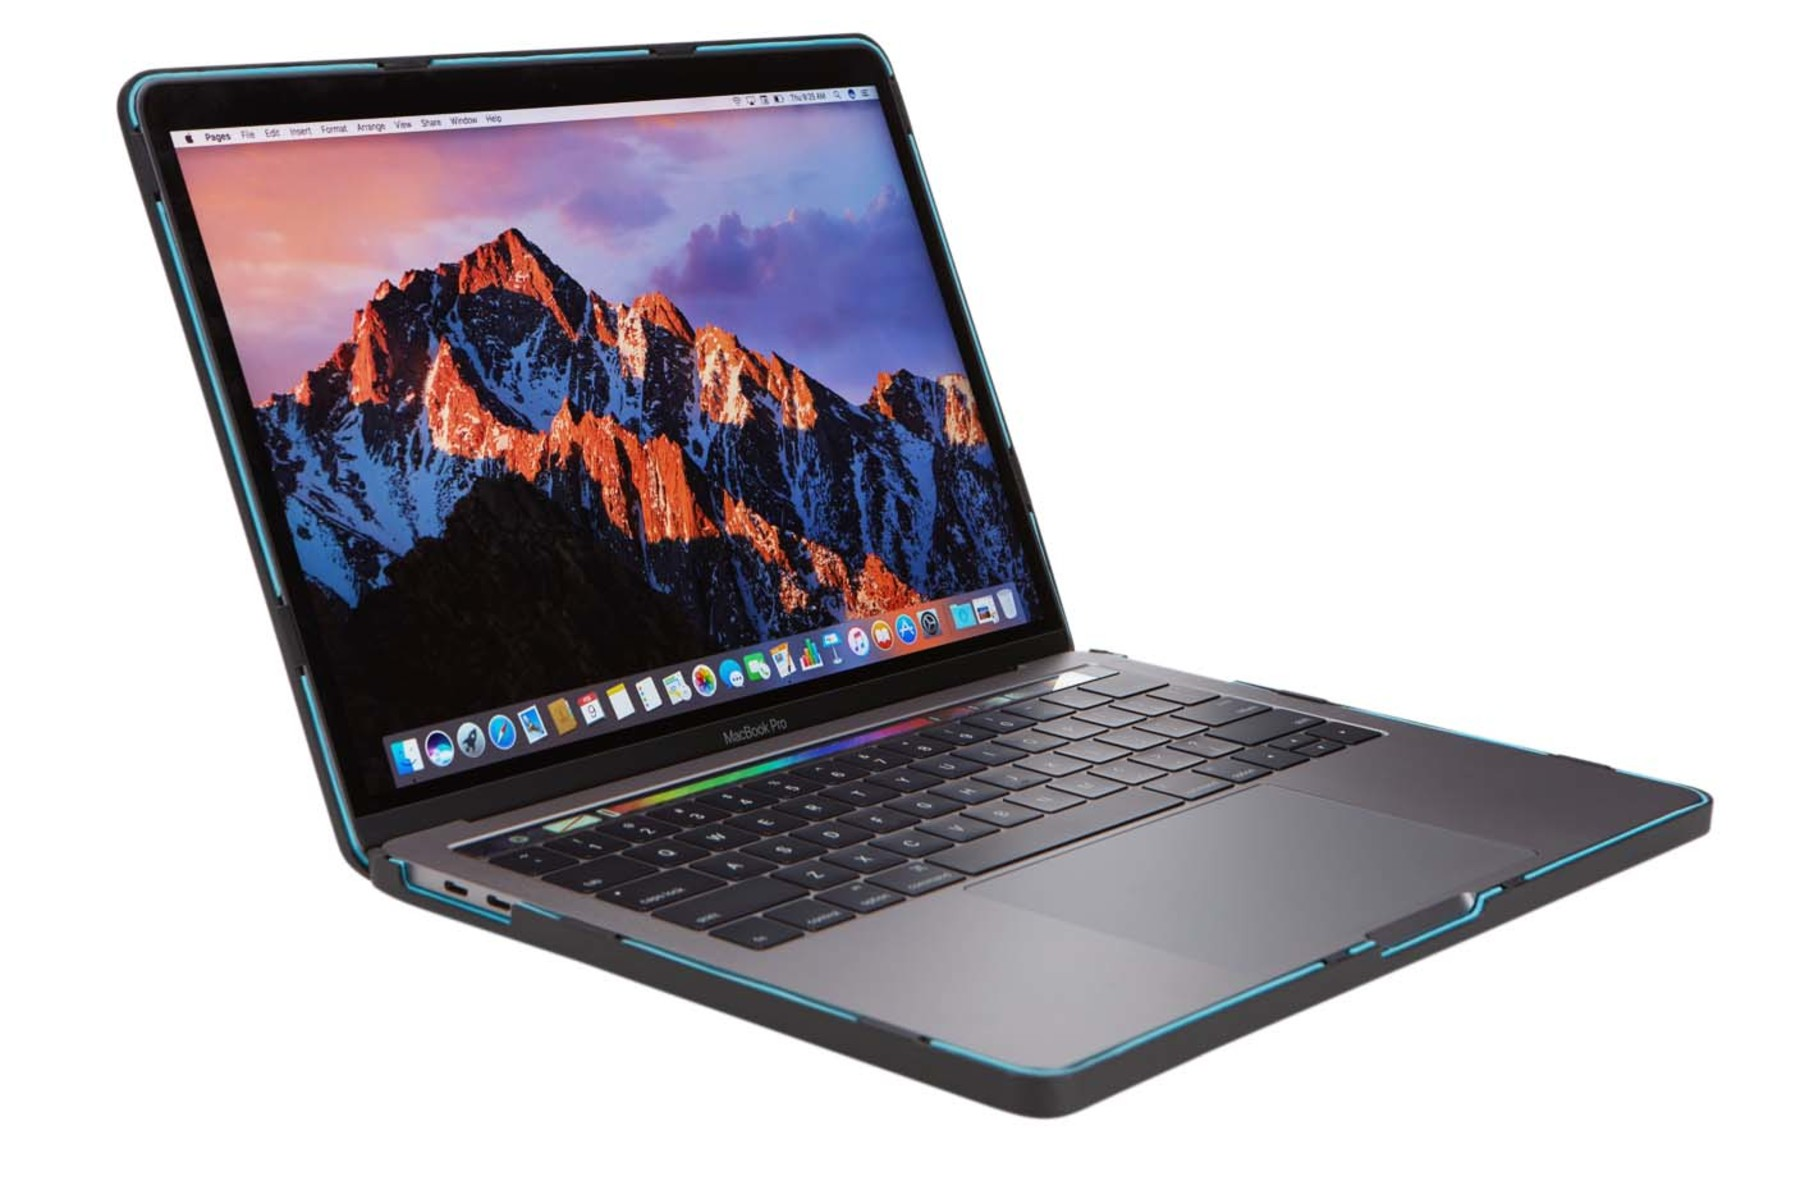 Velsete Thule Vectros MacBook Bumper | Thule | USA HD-29